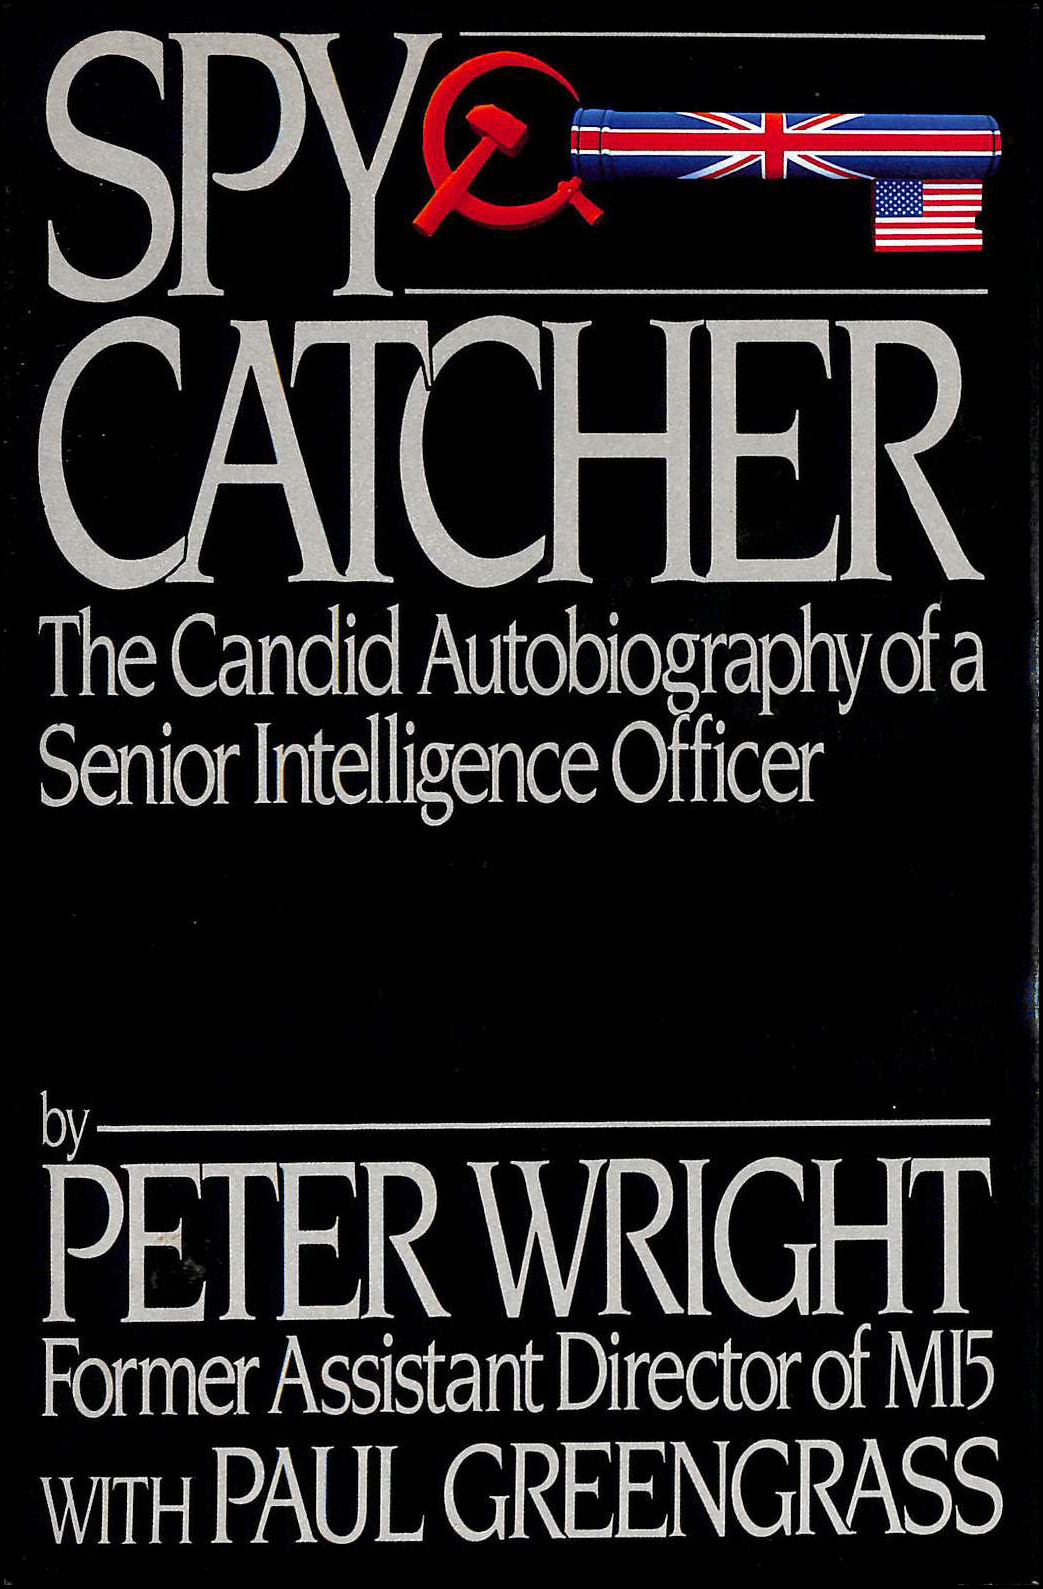 Image for Spycatcher: The Candid Autobiography of a Senior Intelligence Officer